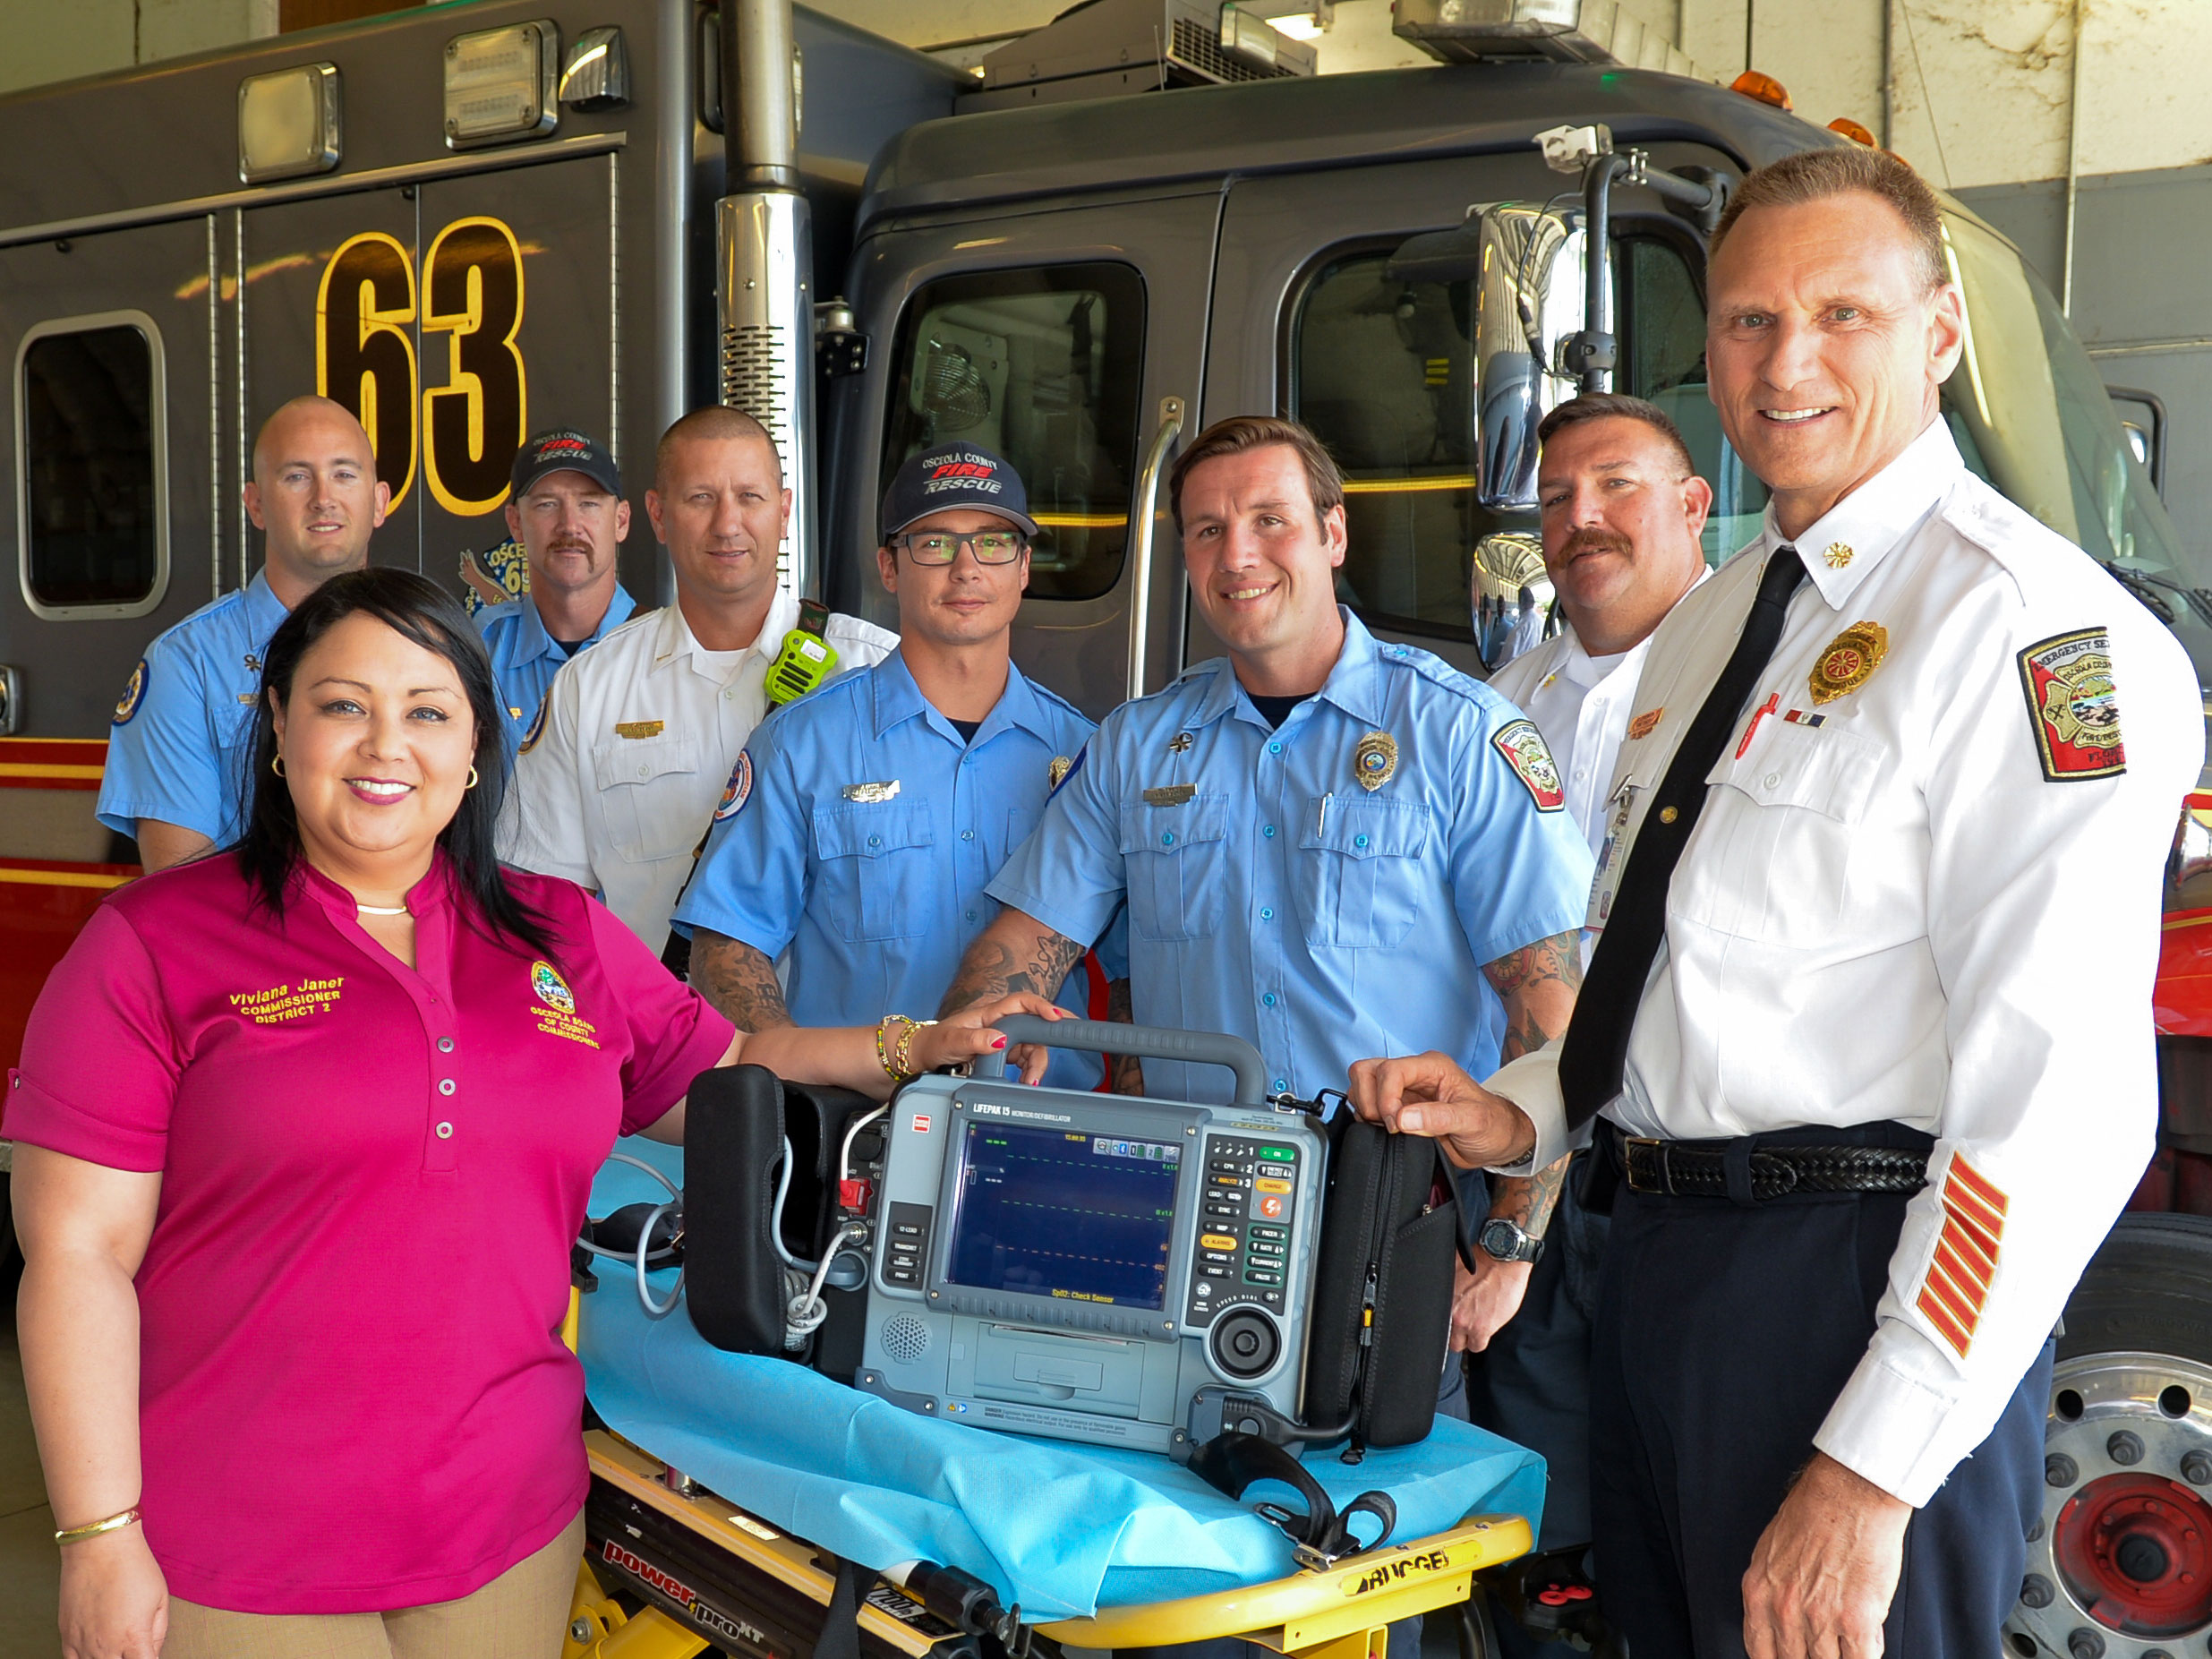 Osceola Commission Chairwoman Viviana Janer, left, with Fire Chief Robert Sorenson, far right, and members of Station 63 with the new LIFEPAK 15.